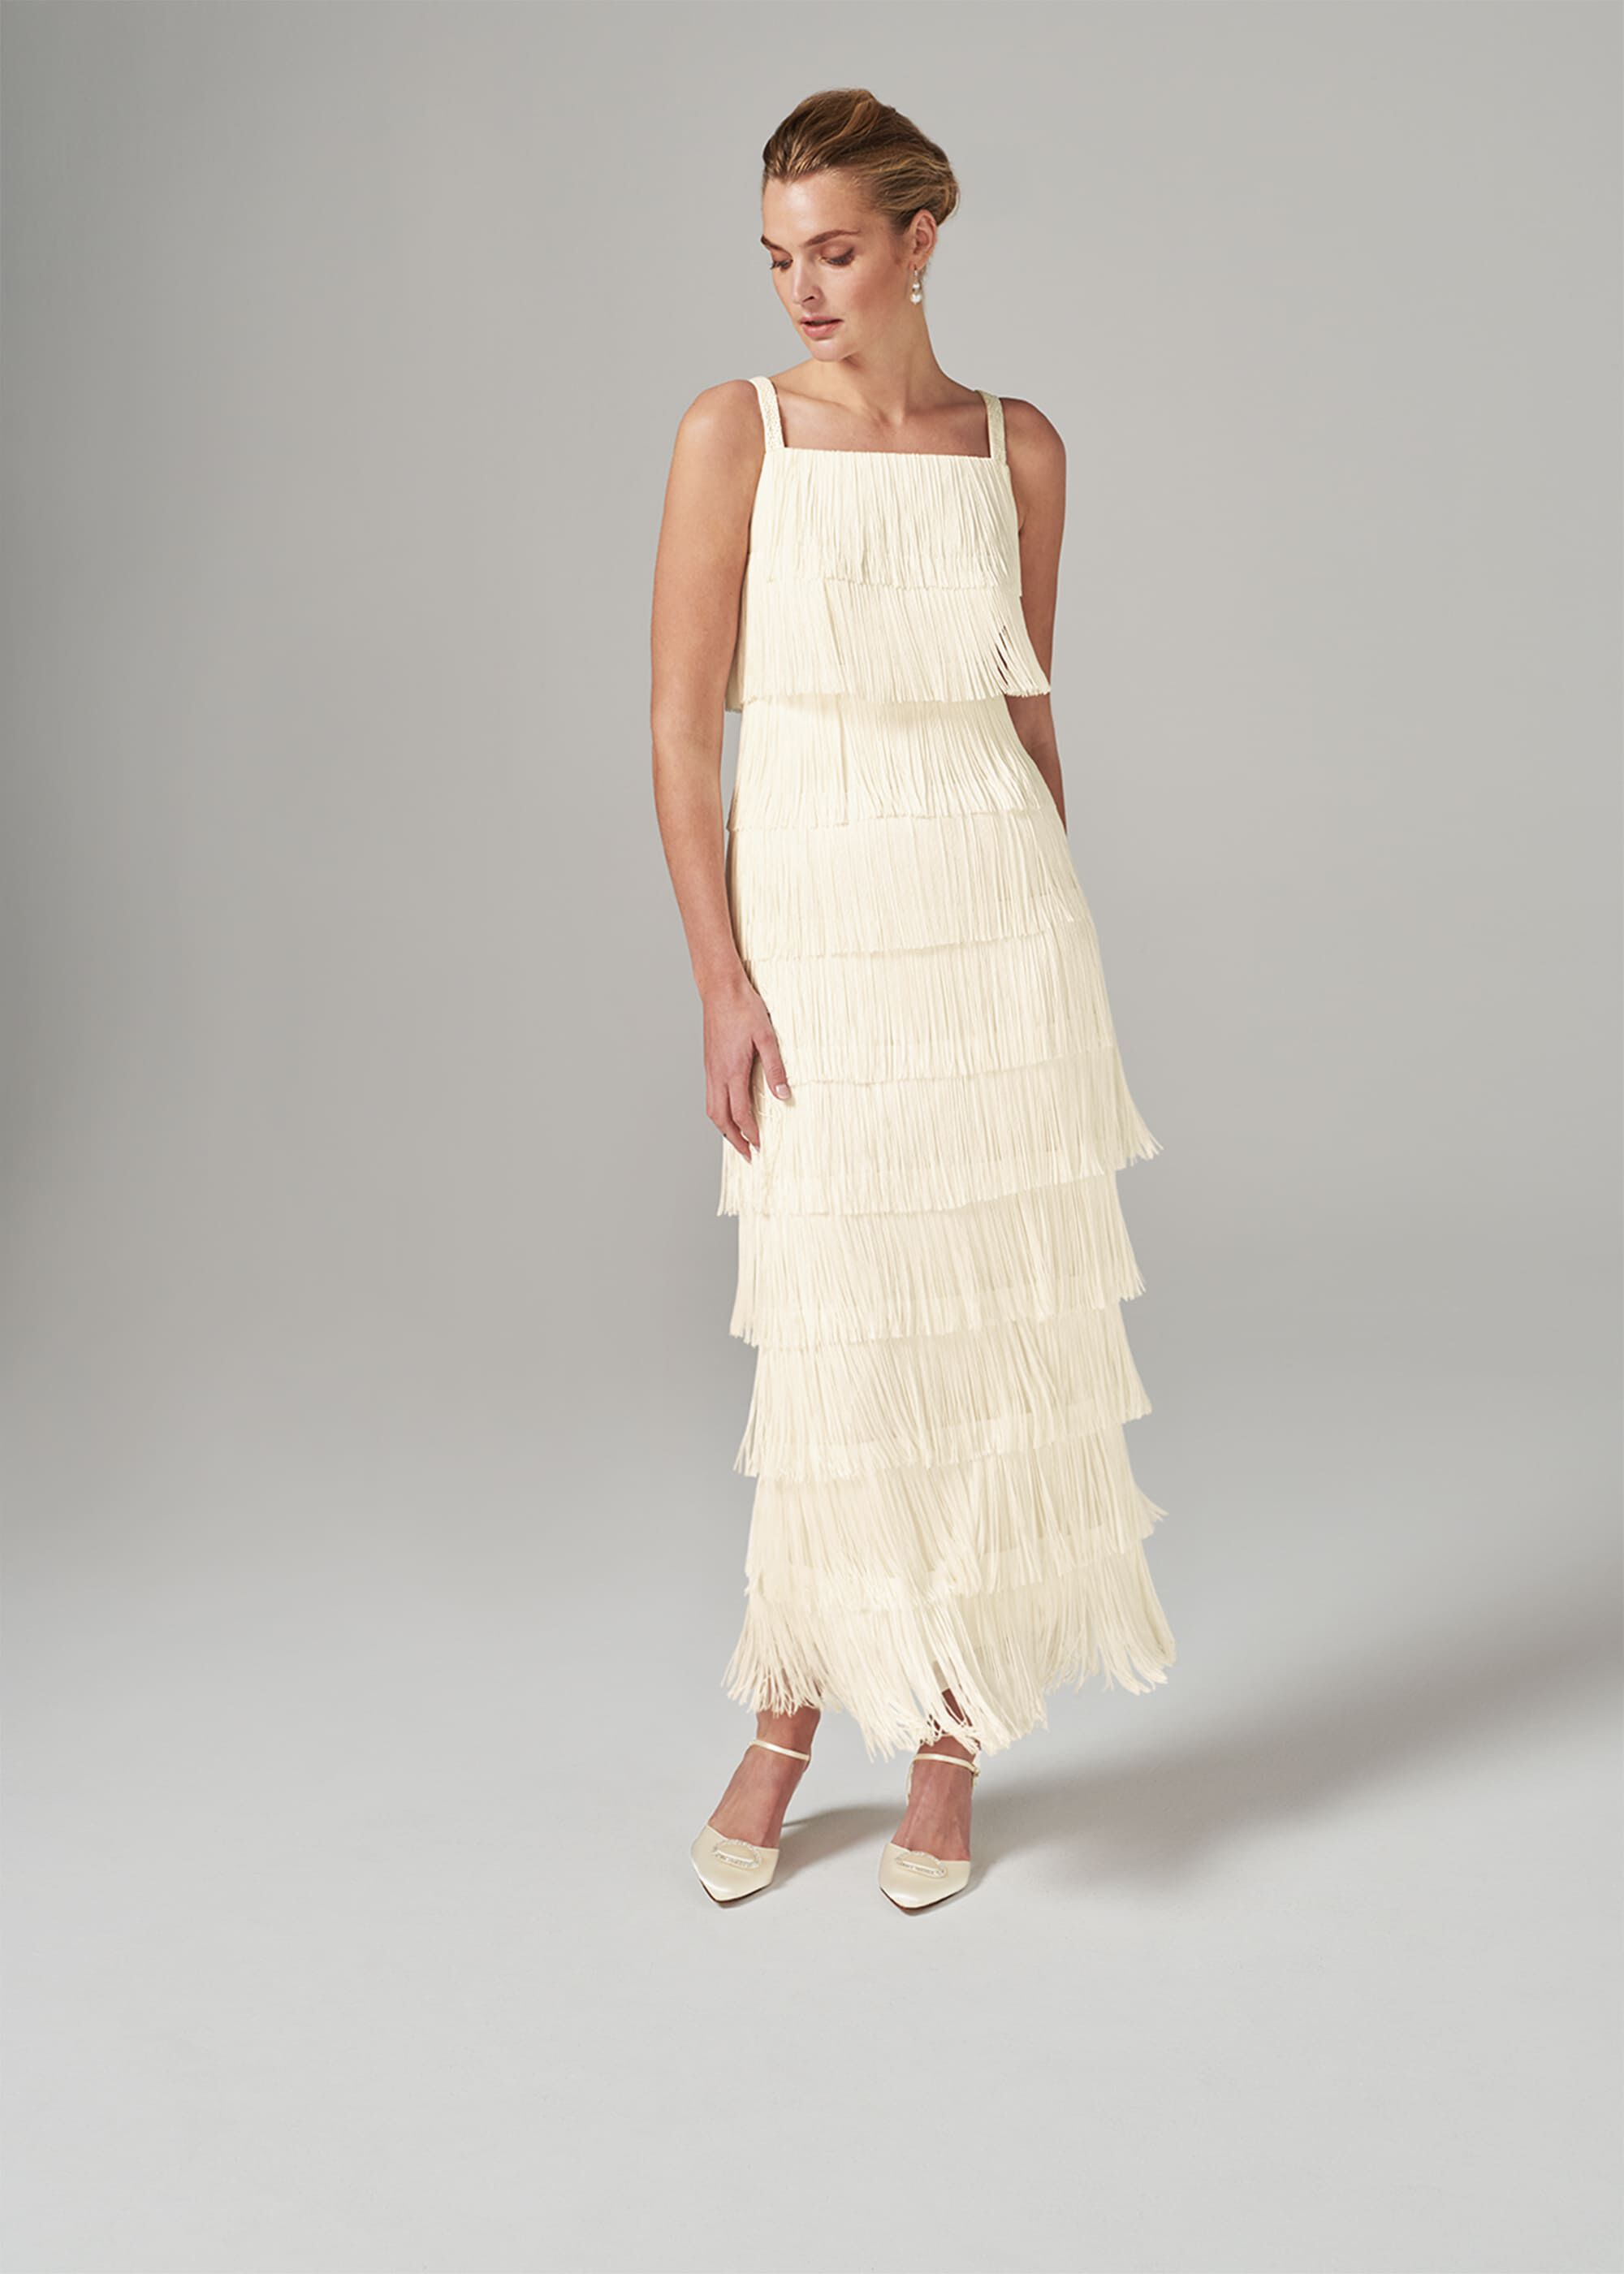 Vintage Style Wedding Dresses, Vintage Inspired Wedding Gowns Phase Eight Elecia Fringe Maxi Dress Cream Maxi £250.00 AT vintagedancer.com